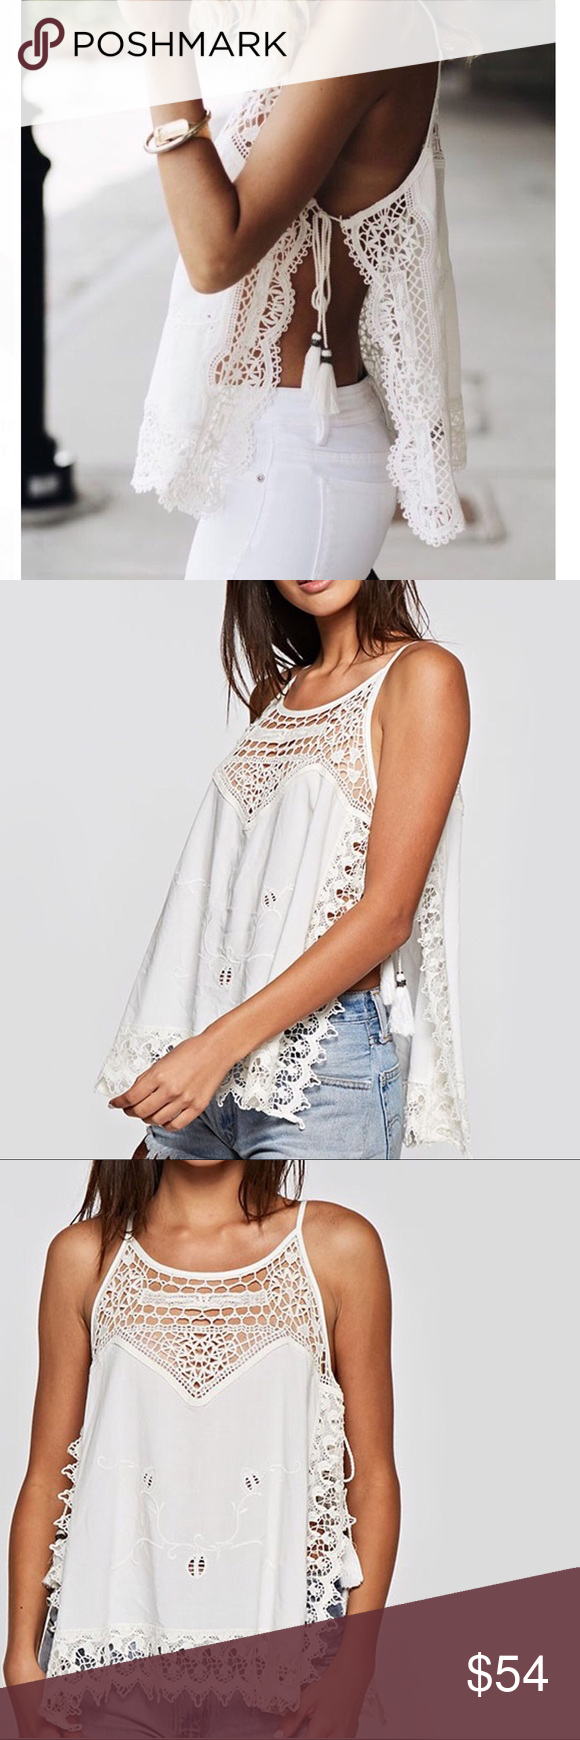 d979572d6ef93e Crochet Embroidered Open Side Tie Apron Top Embroidered Tank Top - Lace  Trim - Tassel Finished Side Ties - Front + Back Embroidery Detail - 100%  Rayon This ...